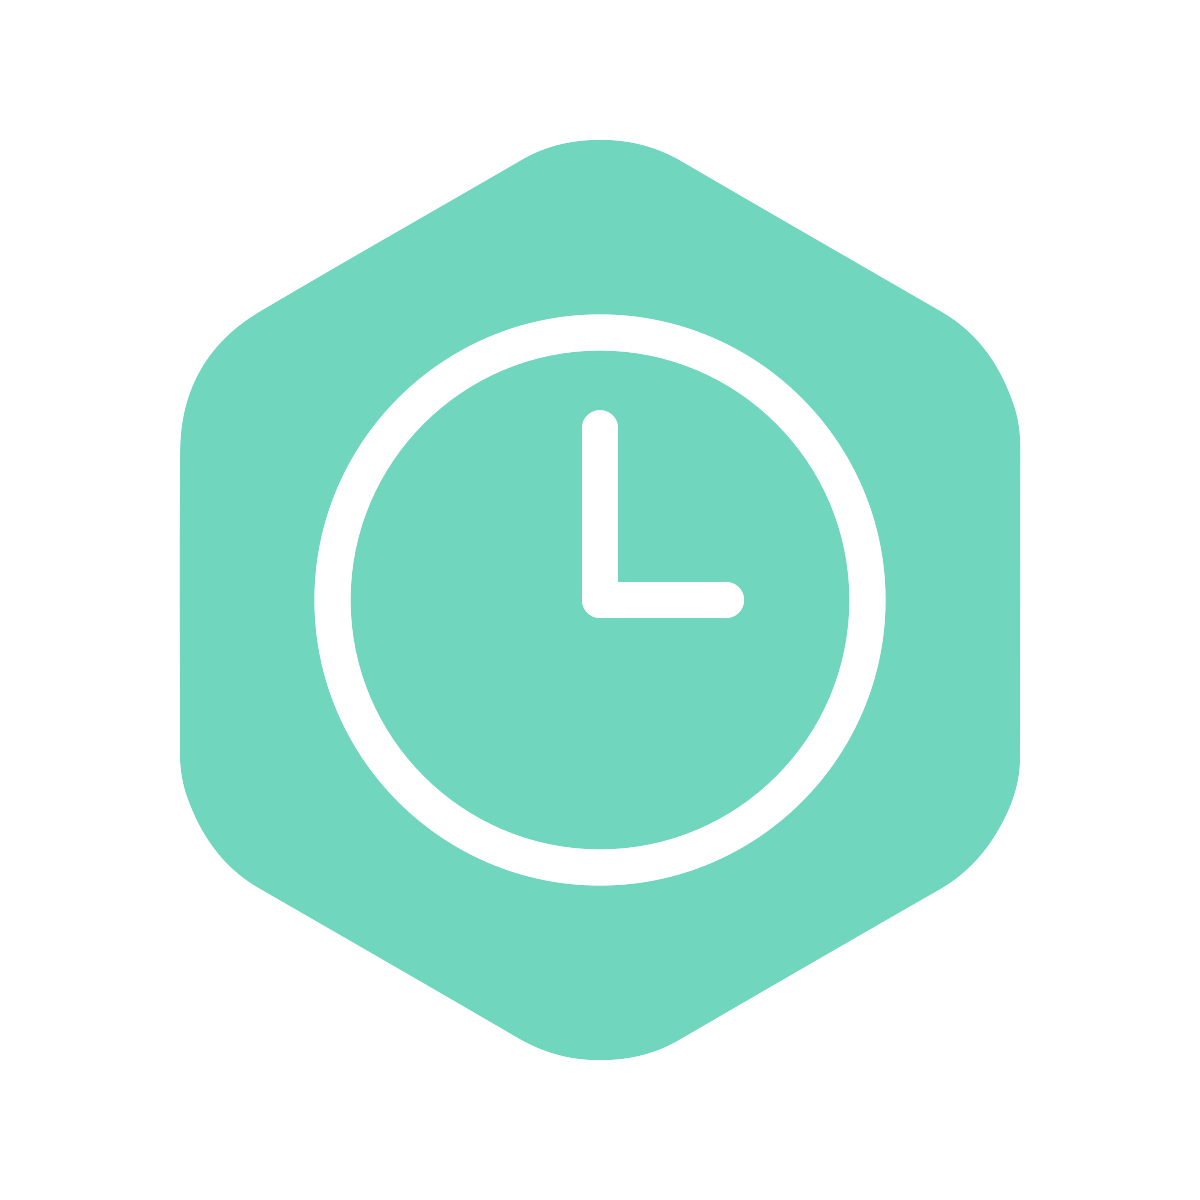 Productivity - I'm a massive productivity nerd and can cover time management techniques, mindset changes, and useful apps and tools to help stay organised.